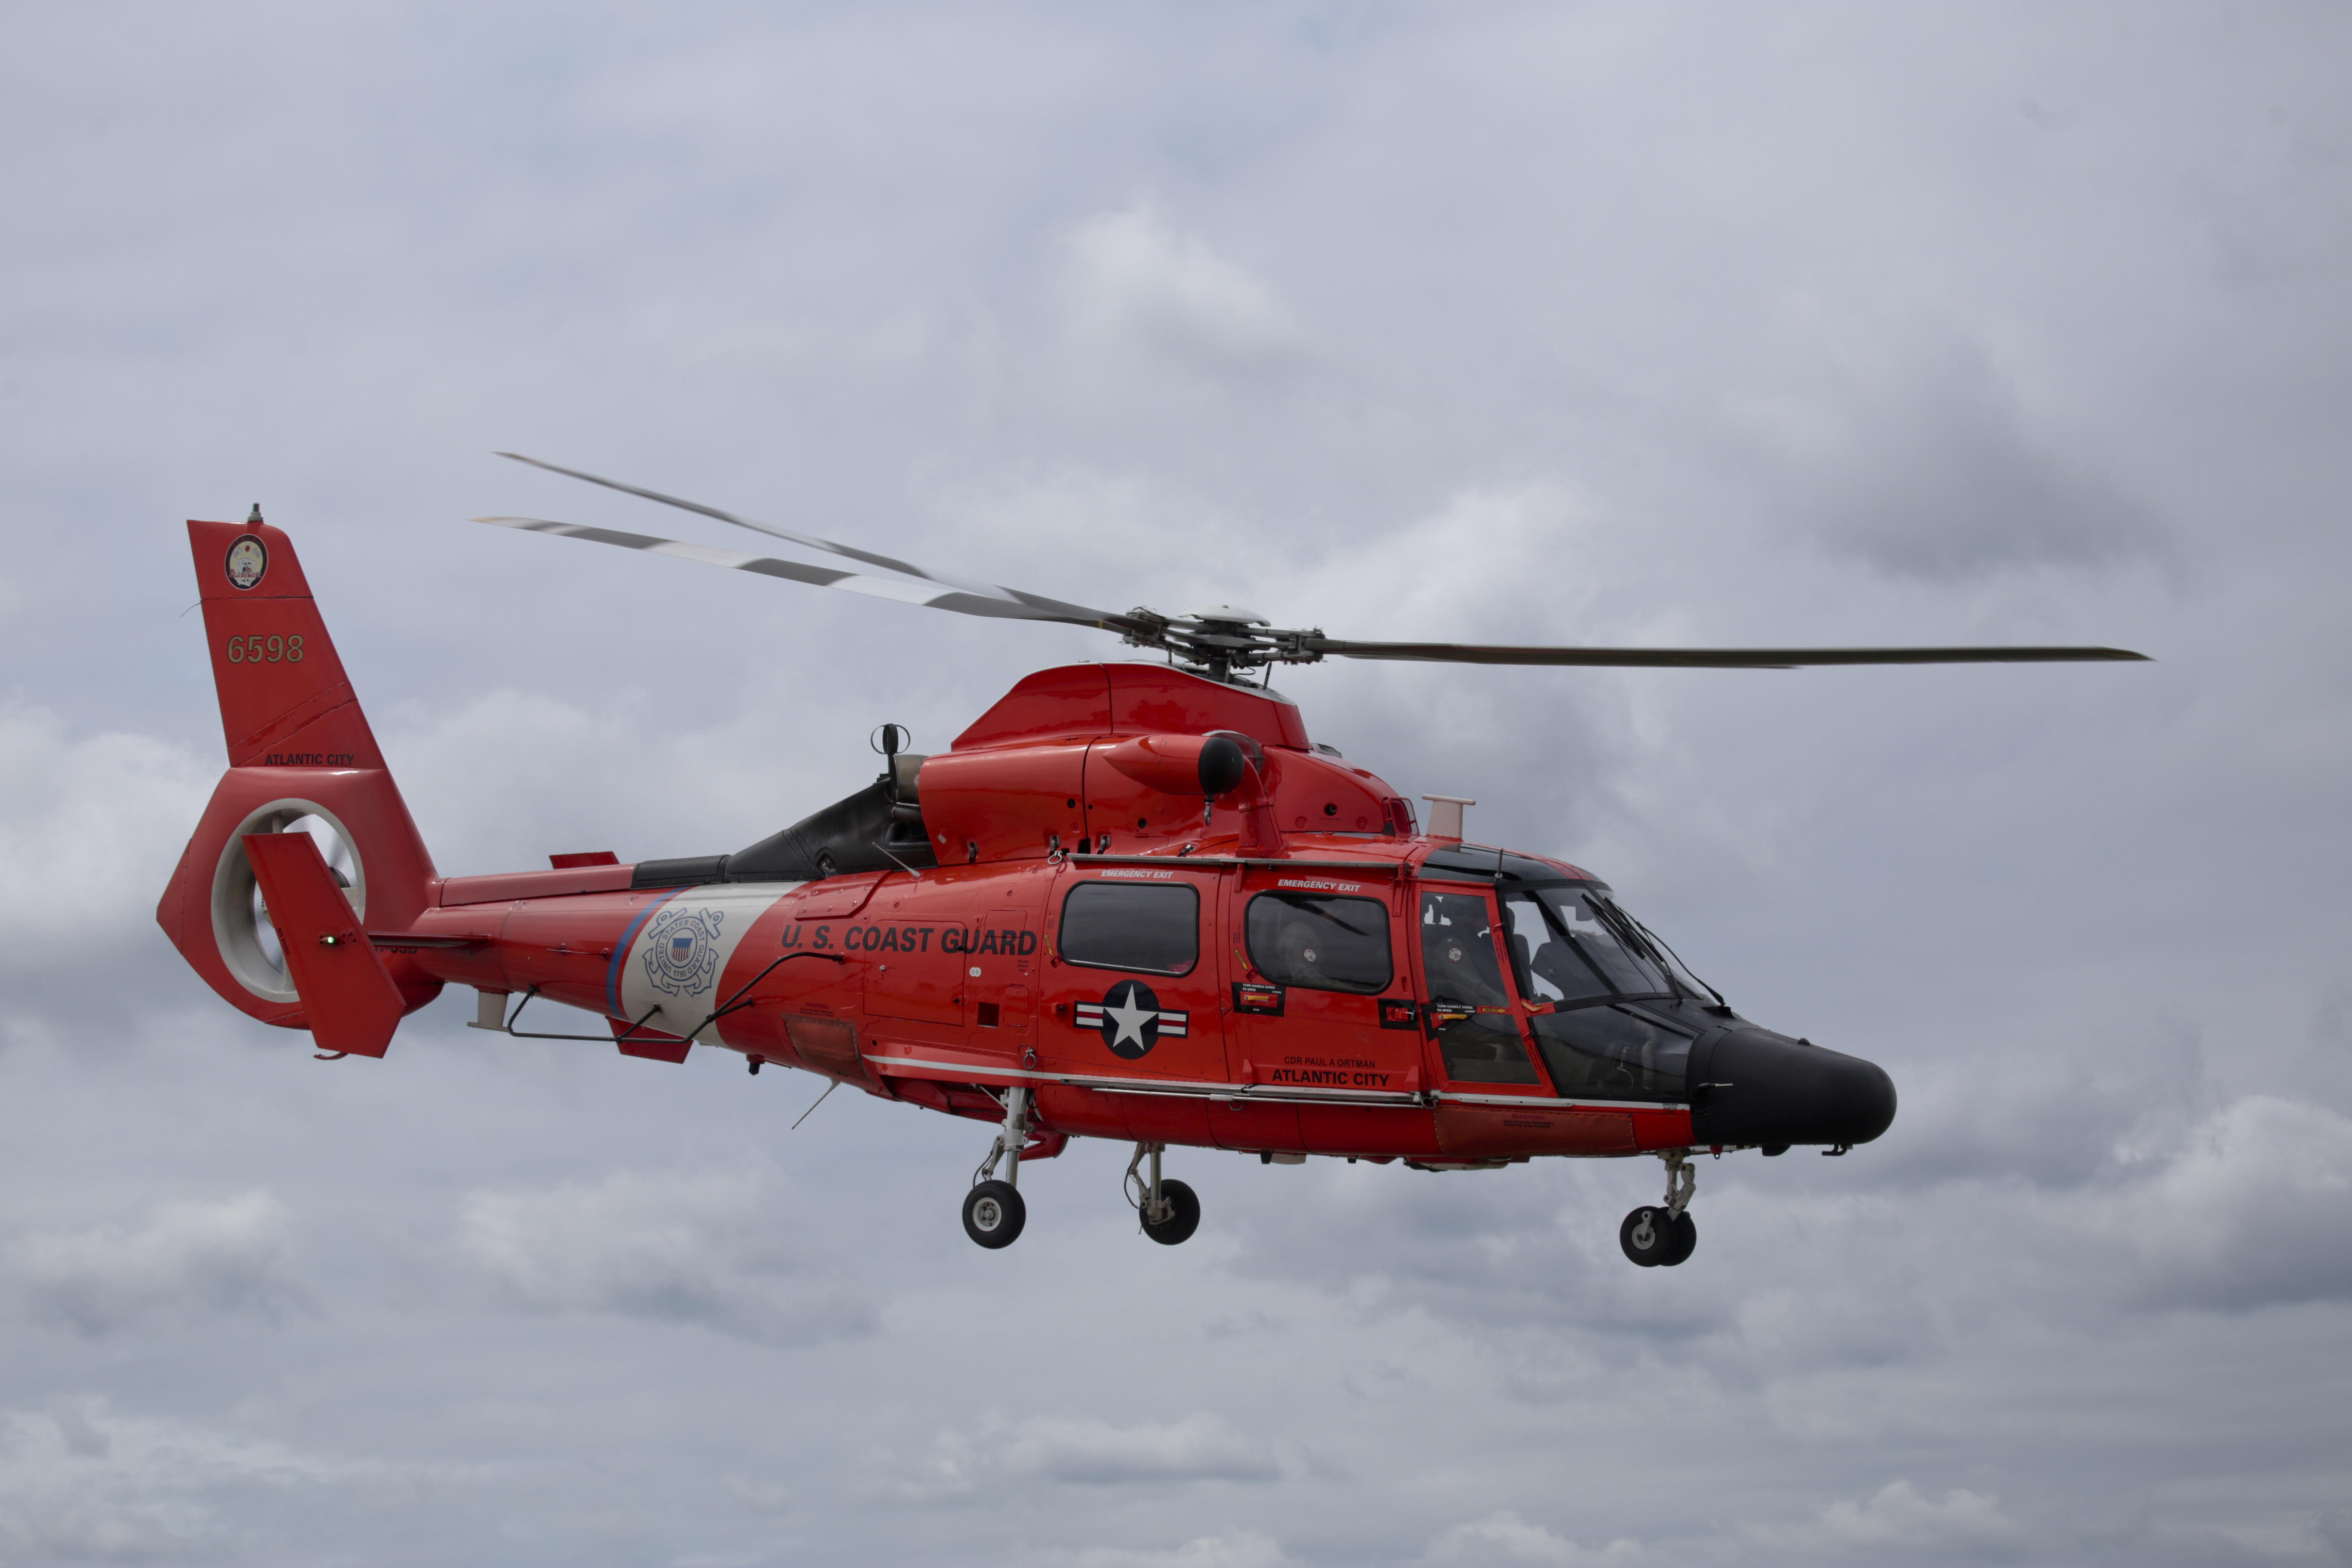 US Coast Guard searching for three missing fishermen